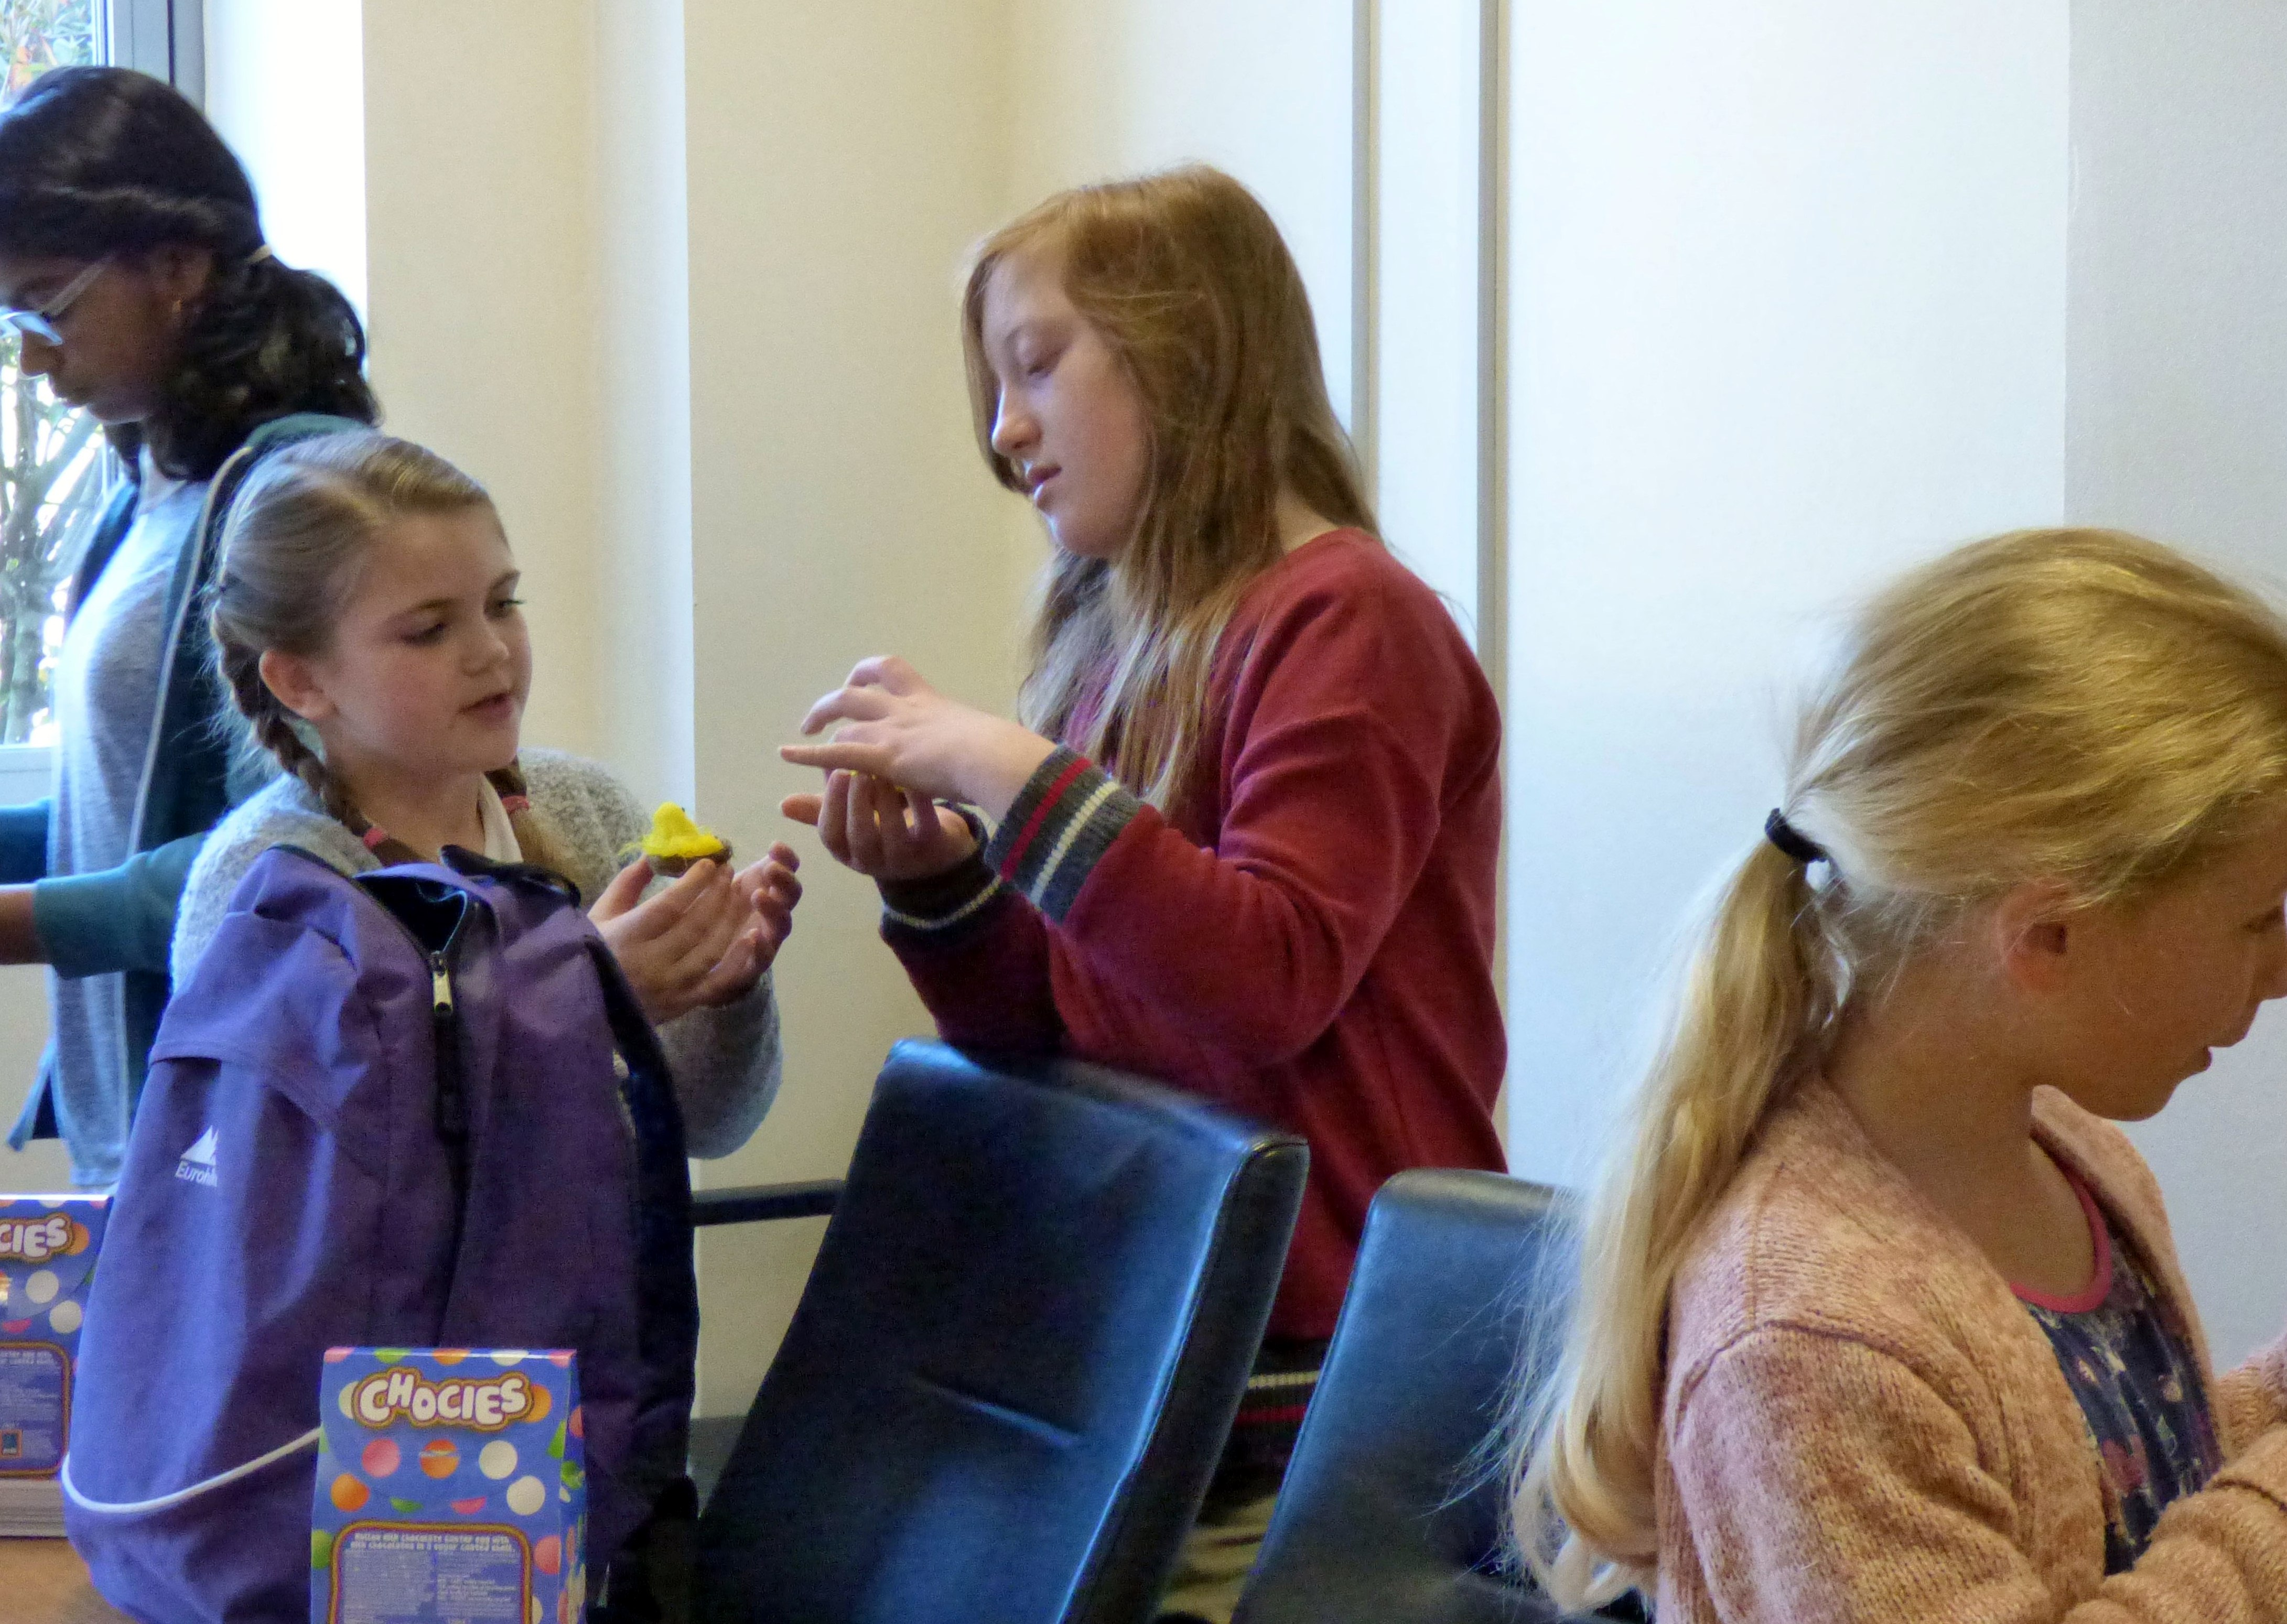 At the end of our workshop we were given Easter eggs and chicks to put in our baskets. YE group April 2017